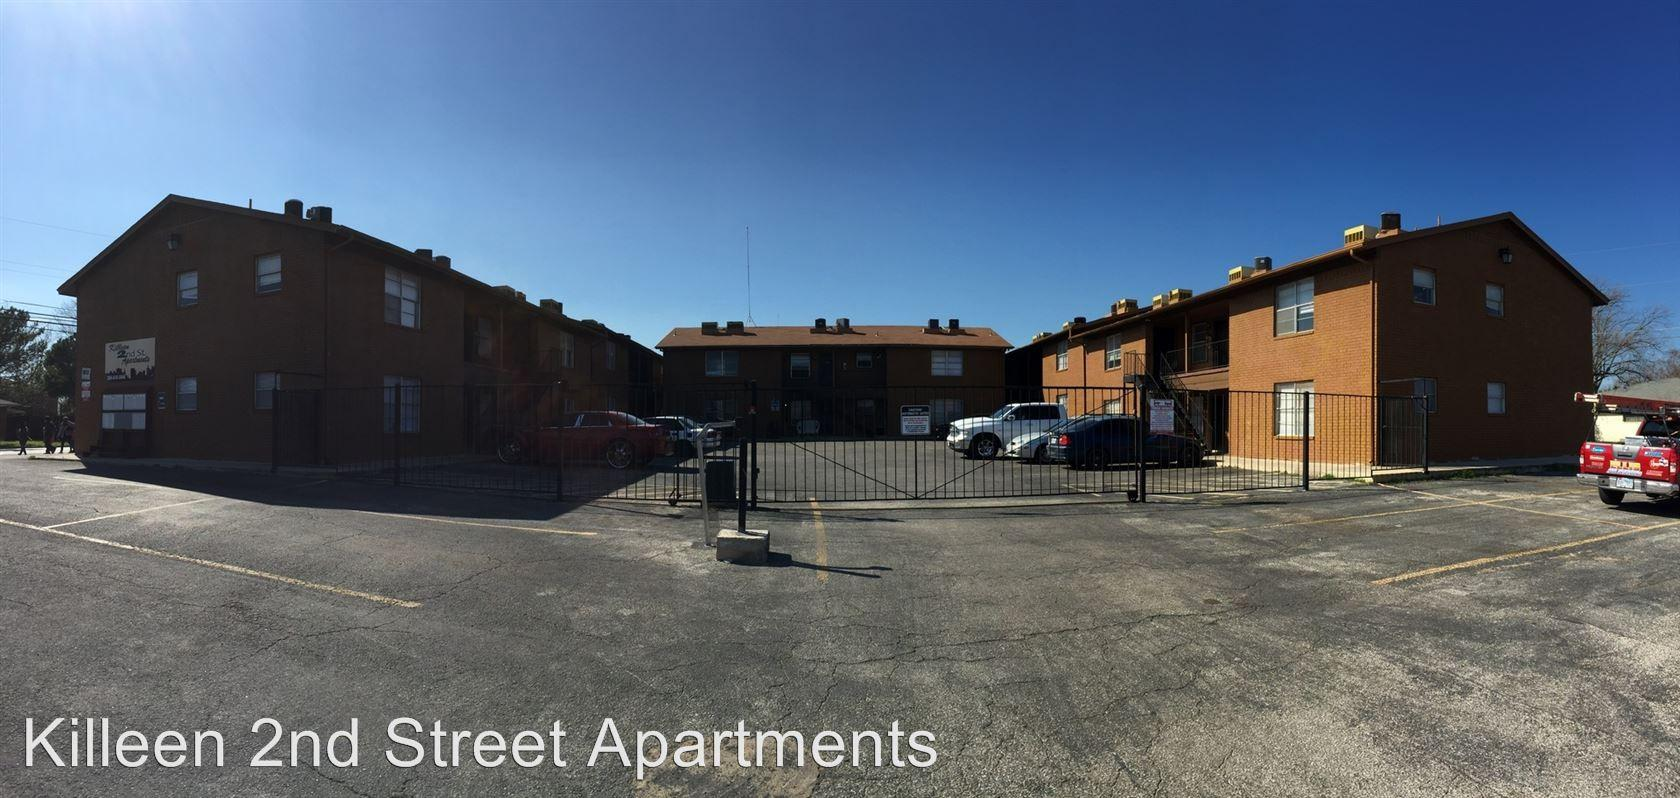 1403 N 2nd St. Apartments photo #1